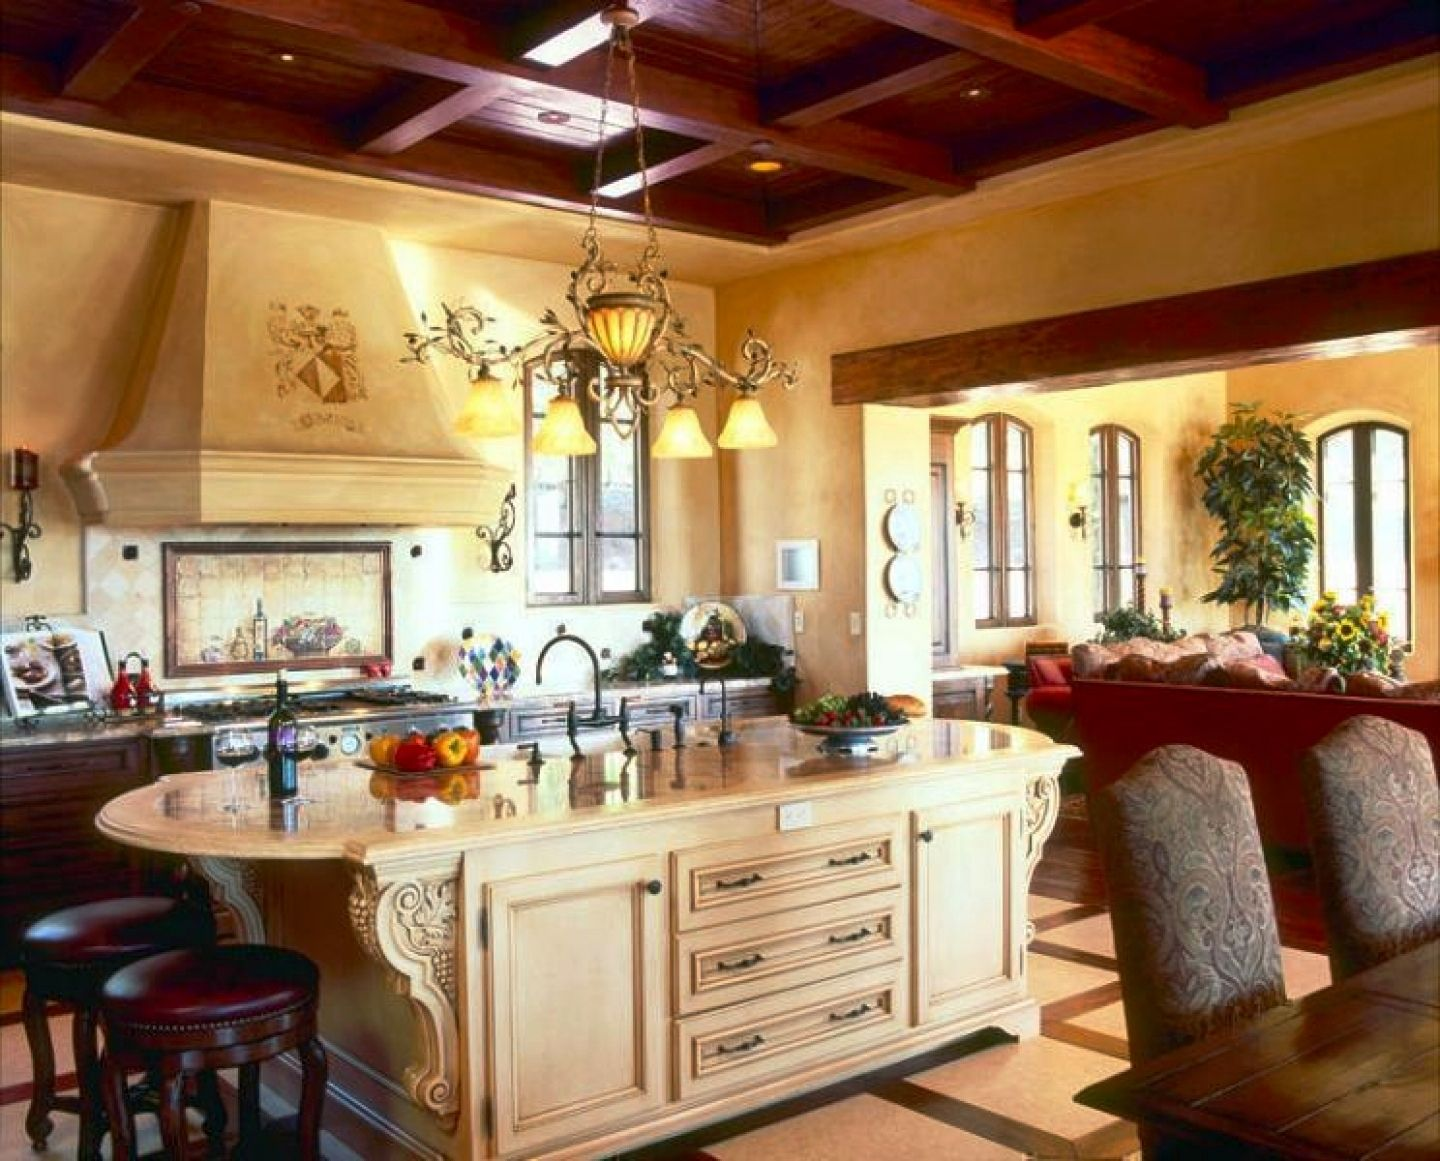 tuscan kitchen ideas on a budget | tuscan kitchen design